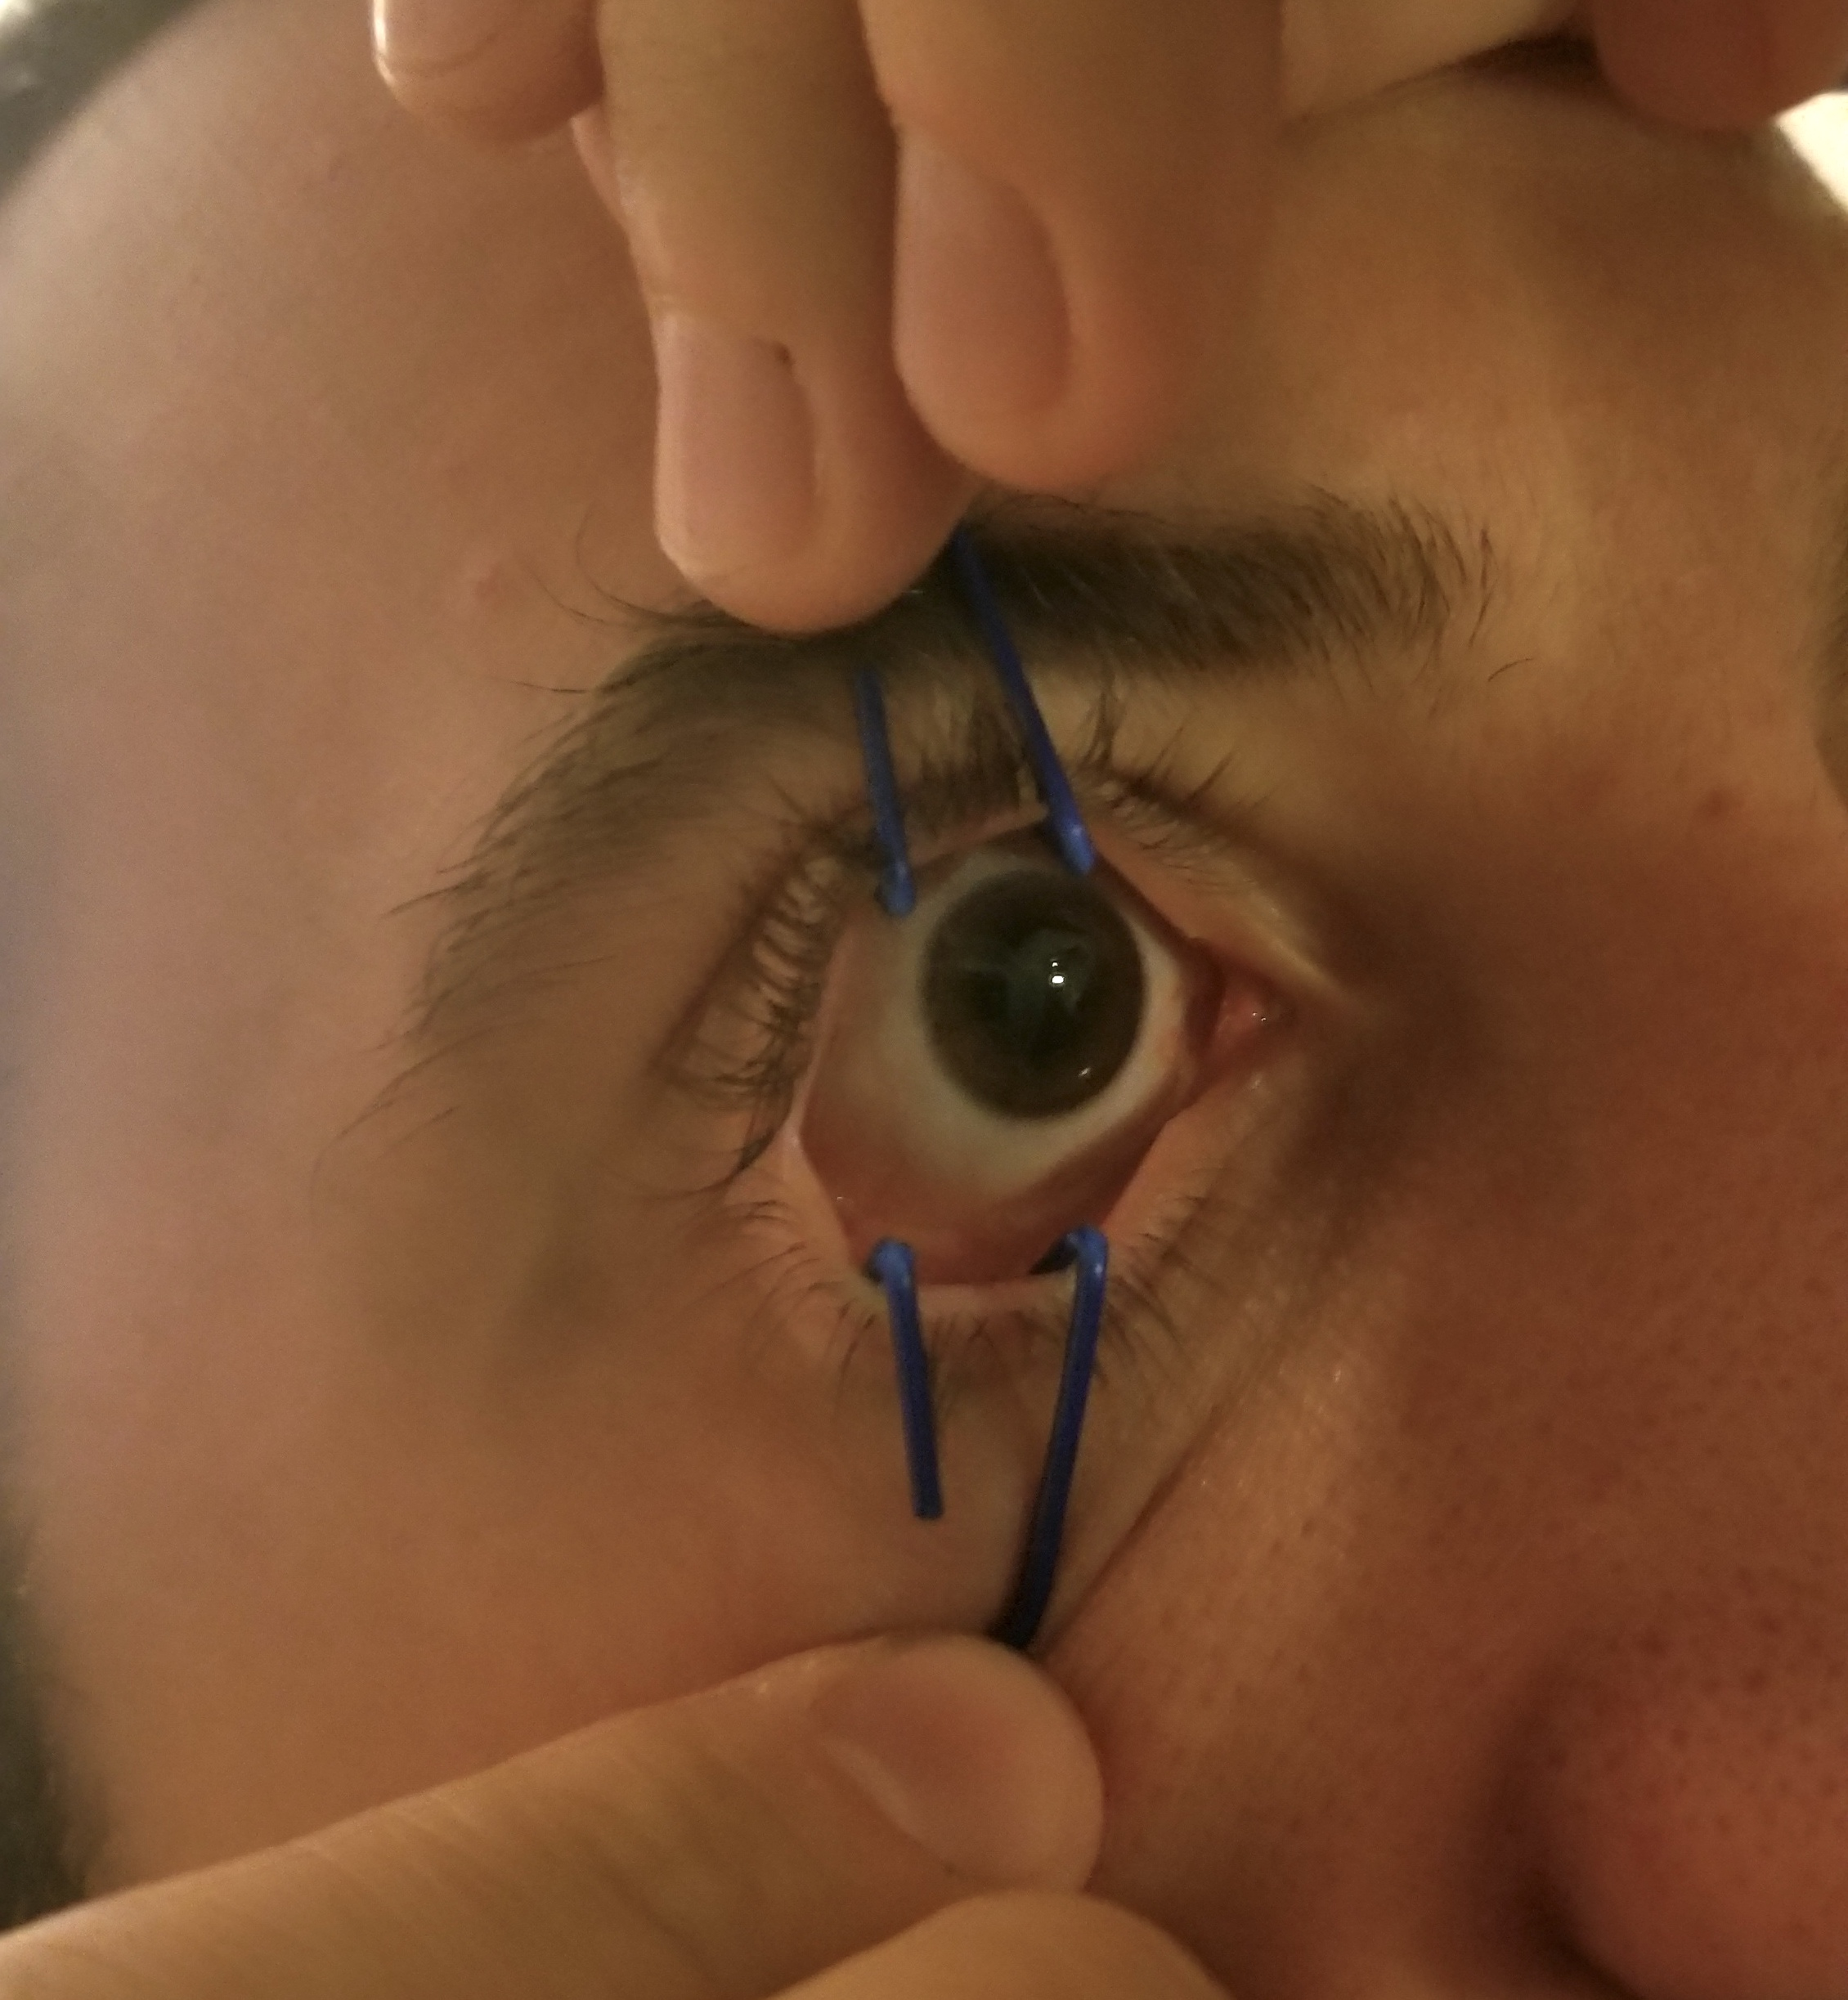 Image 2  - Paperclip Eyelid Retractors in Action  Photo courtesy of Michael Spigner, MD, PGY-3 University of Cincinnati Department of Emergency Medicine